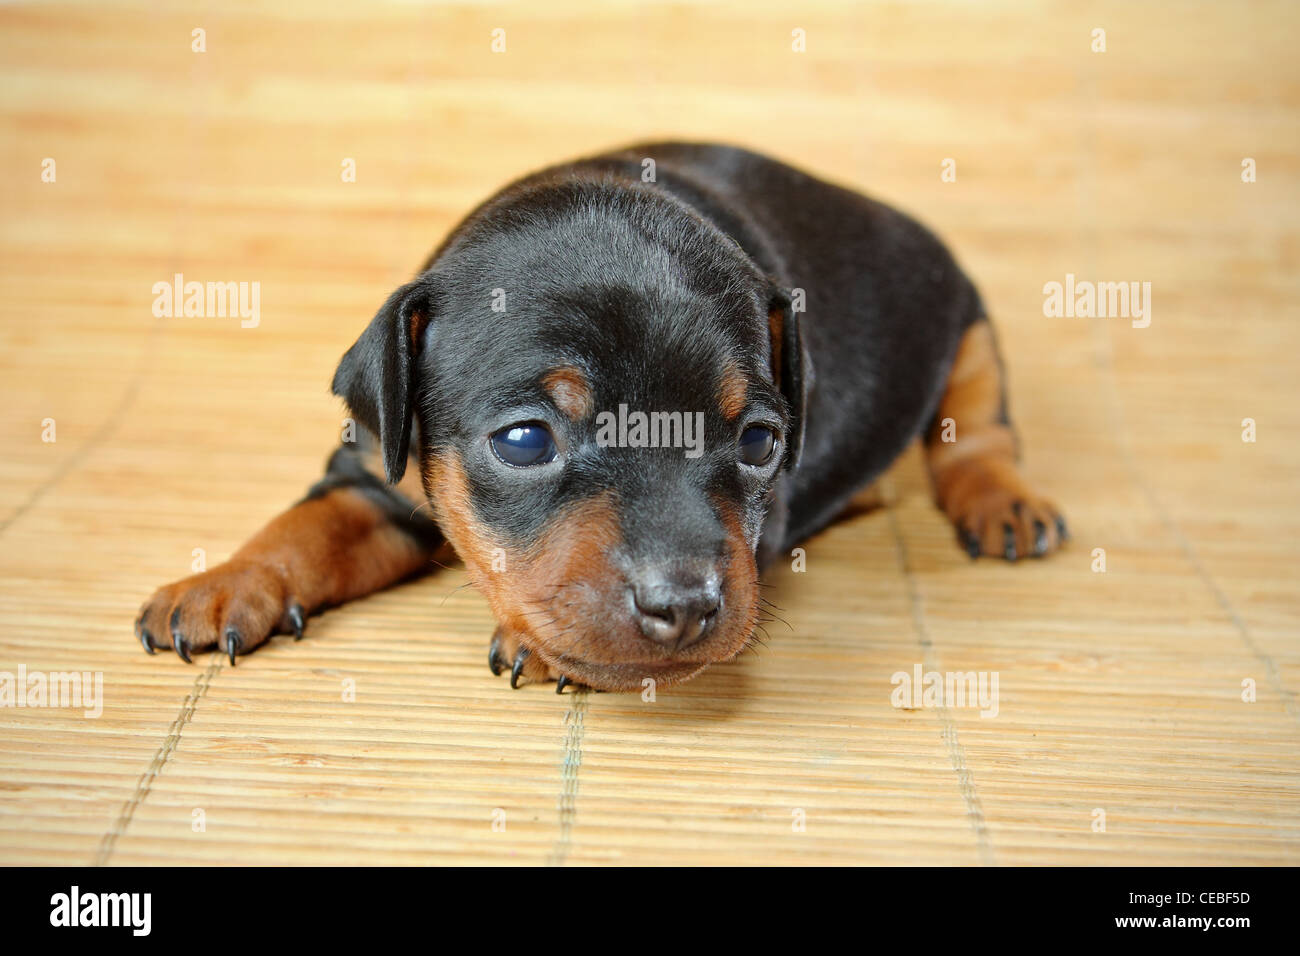 The Miniature Pinscher Puppy 3 Weeks Old Stock Photo 43279305 Alamy